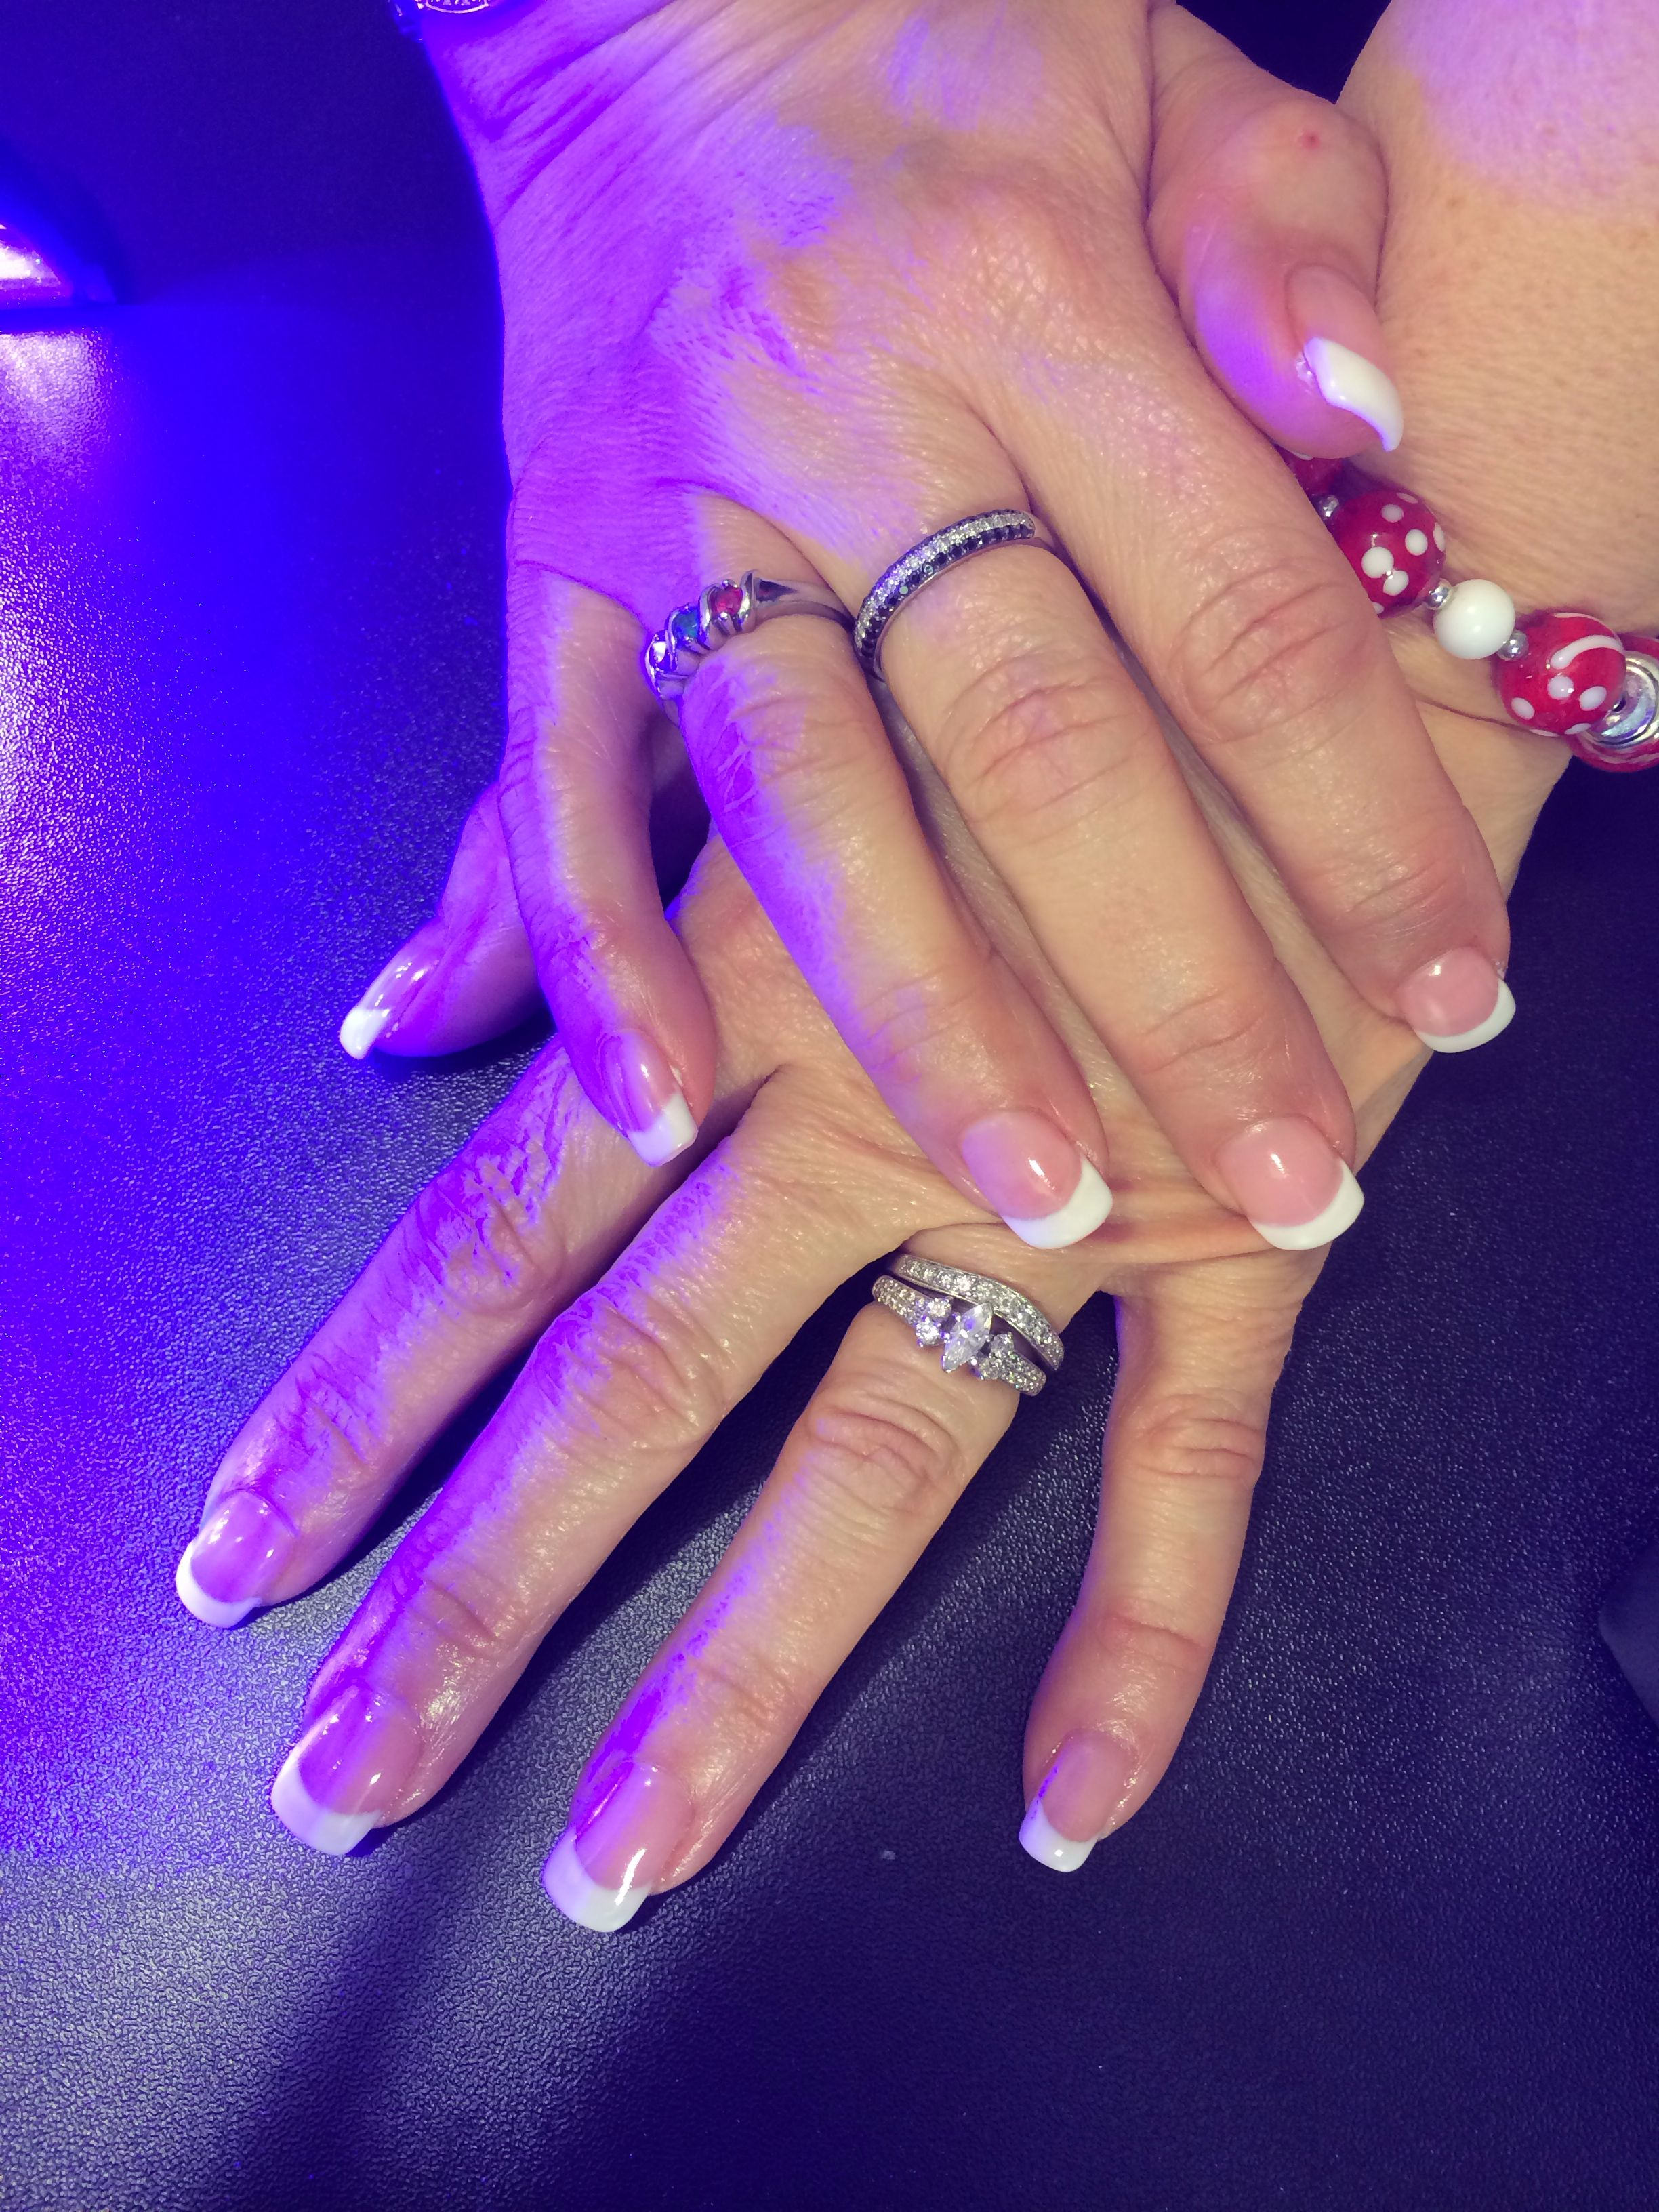 Pink & white free form gel   Nails by Rene\'e   Pinterest   Pink white